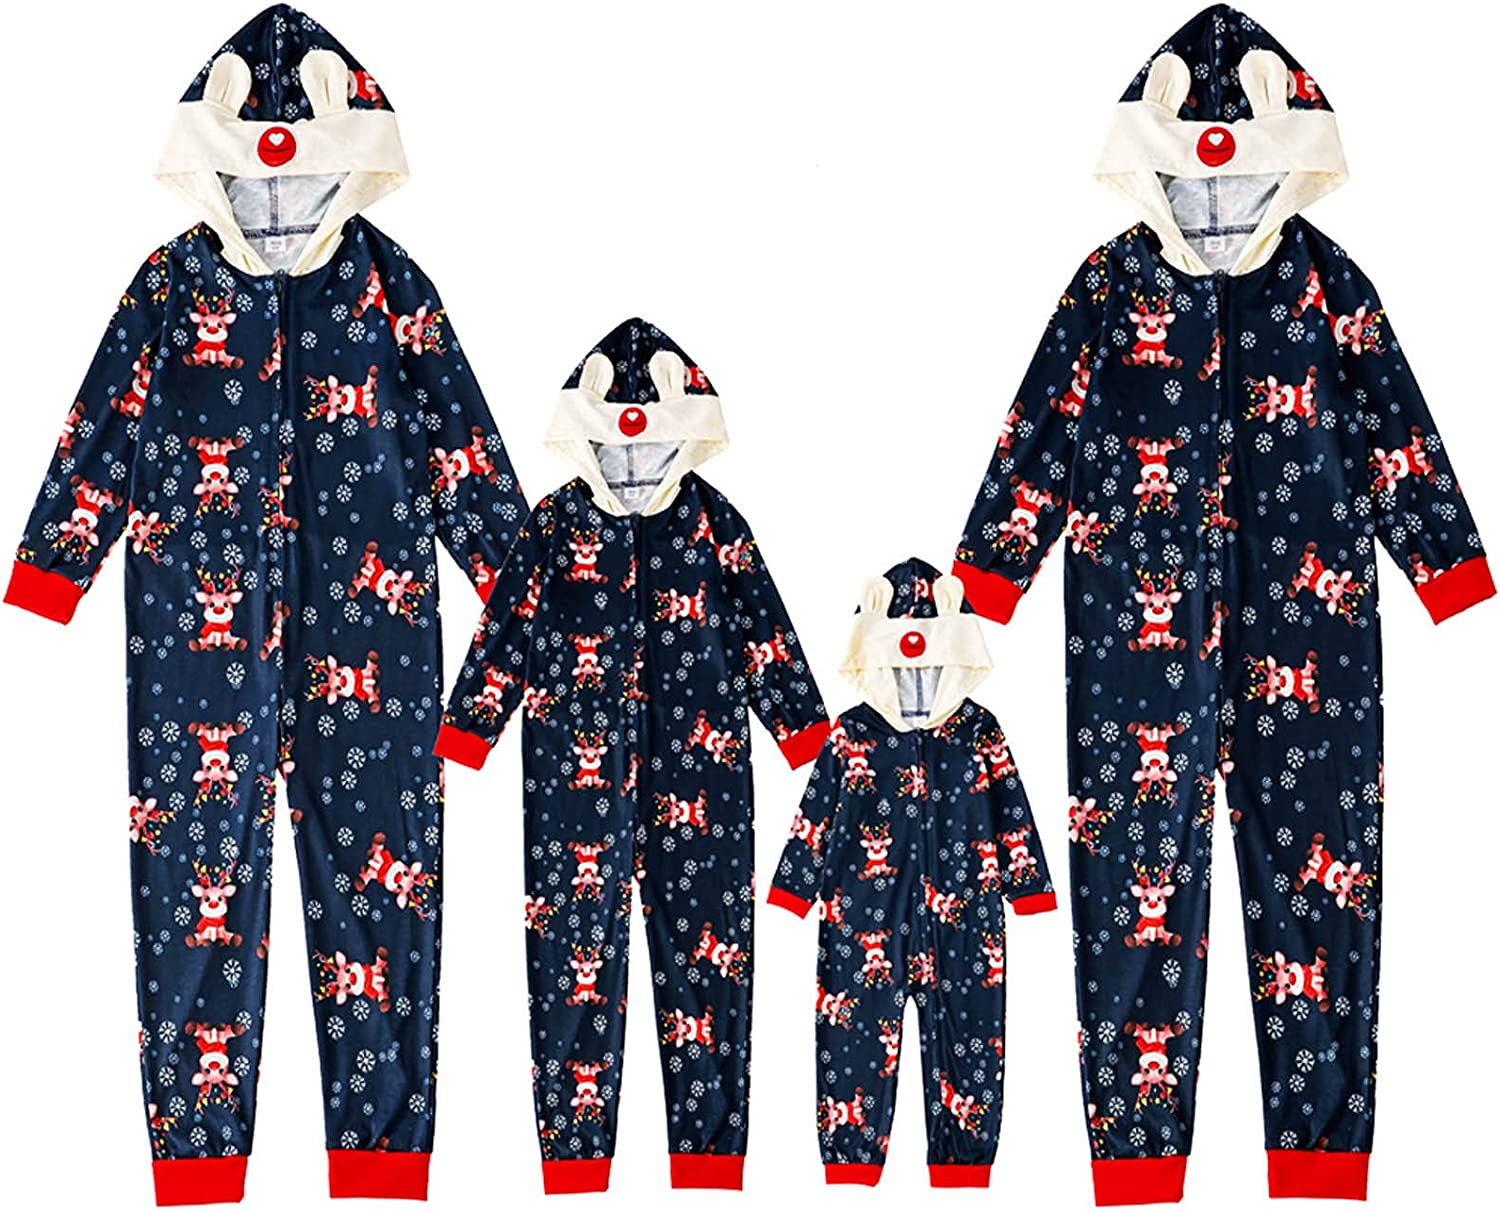 Christmas Pajamas for Max 46% OFF Family service Onesie Romper One P Jumpsuit Zipper